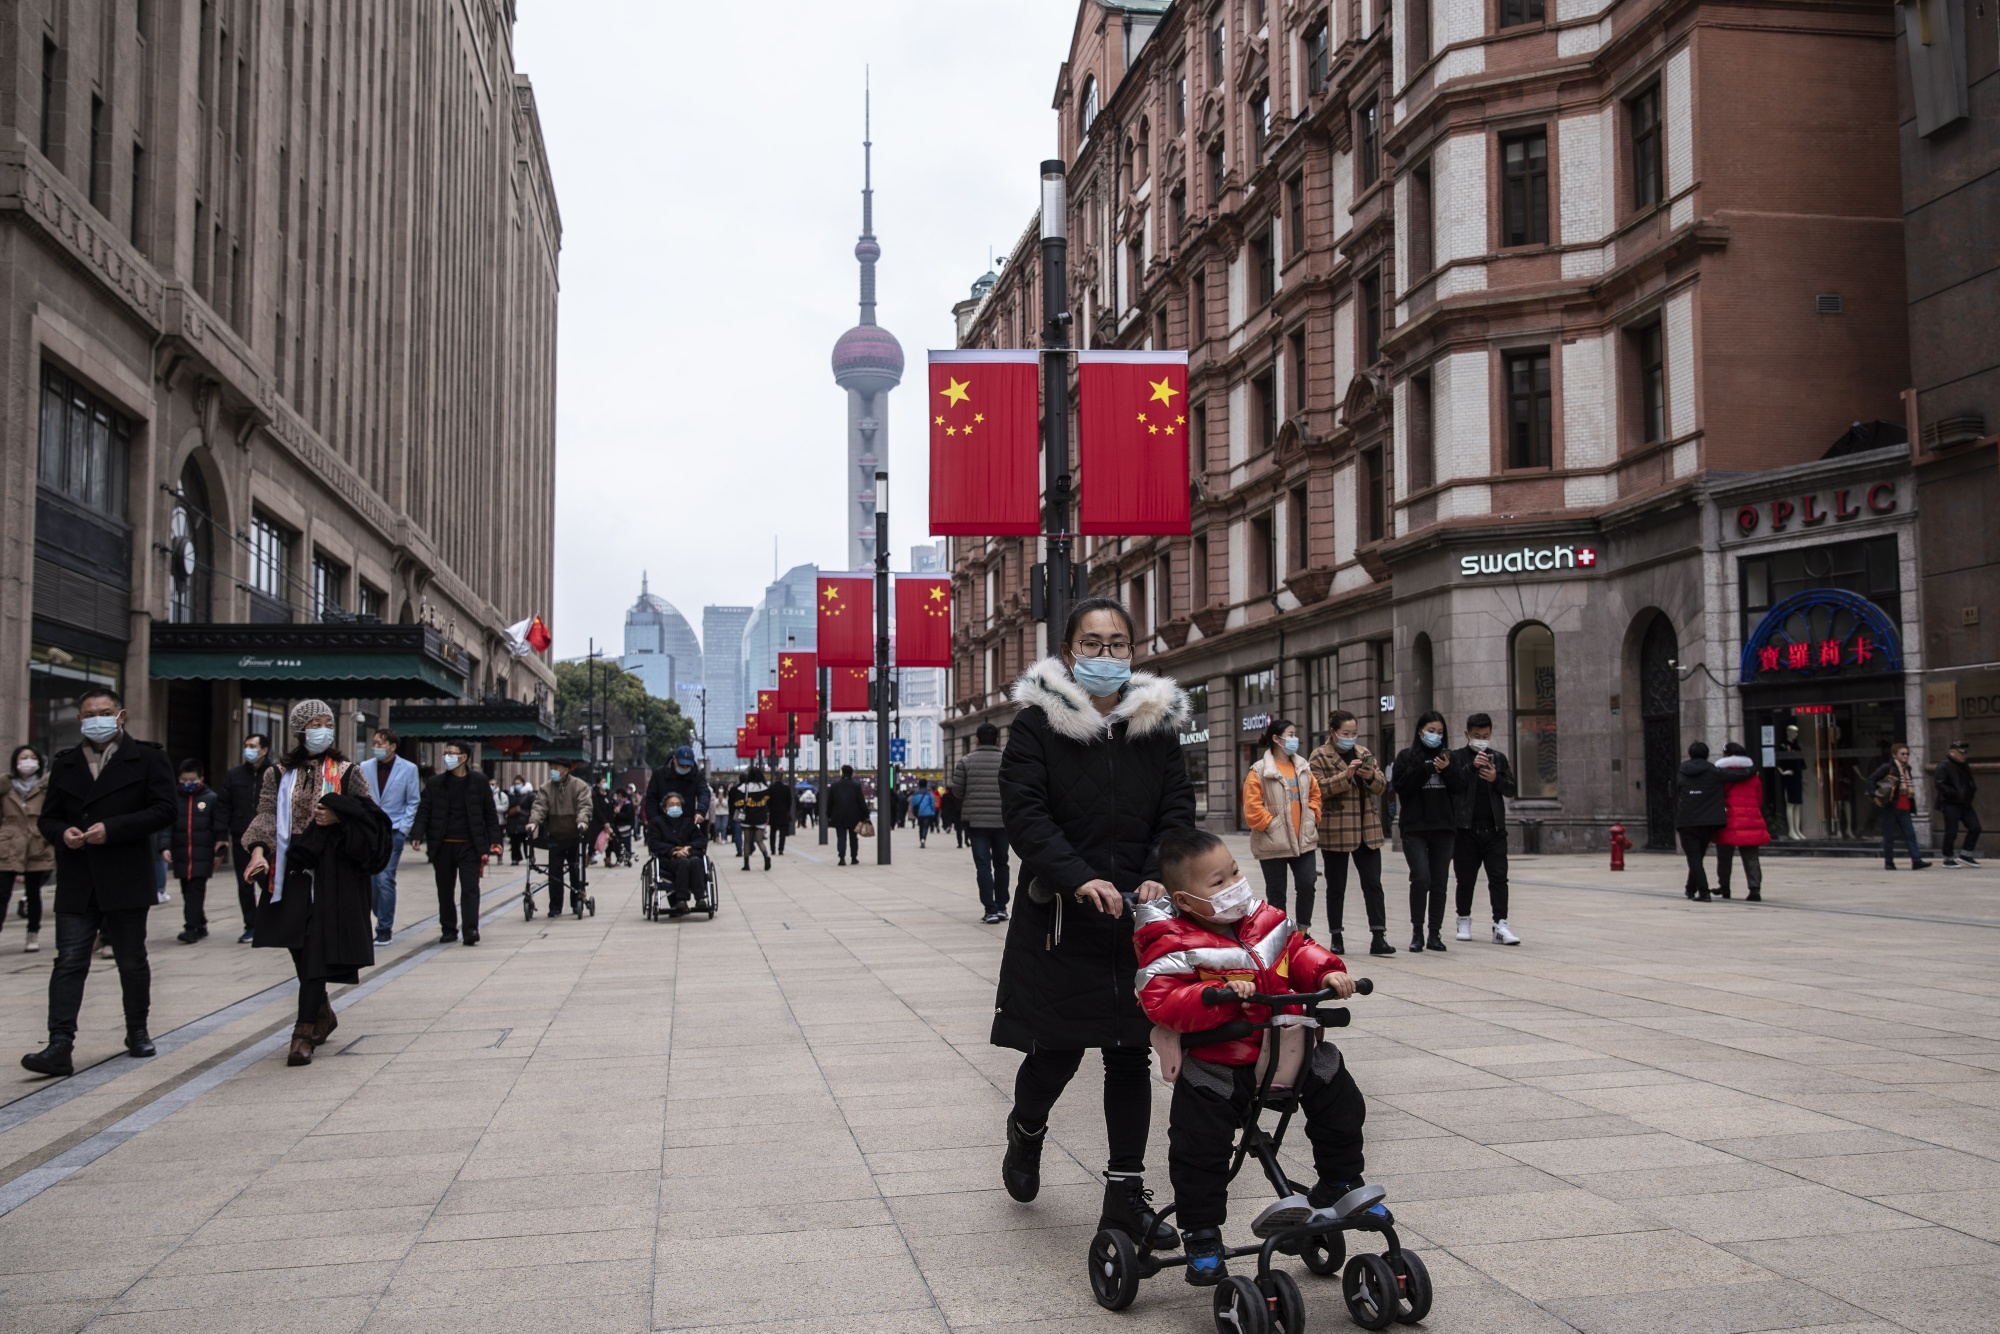 Sales of luxury goods in China have been stronger than mass-market products since the pandemic, reflecting restrictions on overseas travel and a stronger recovery in wages for high-earners.